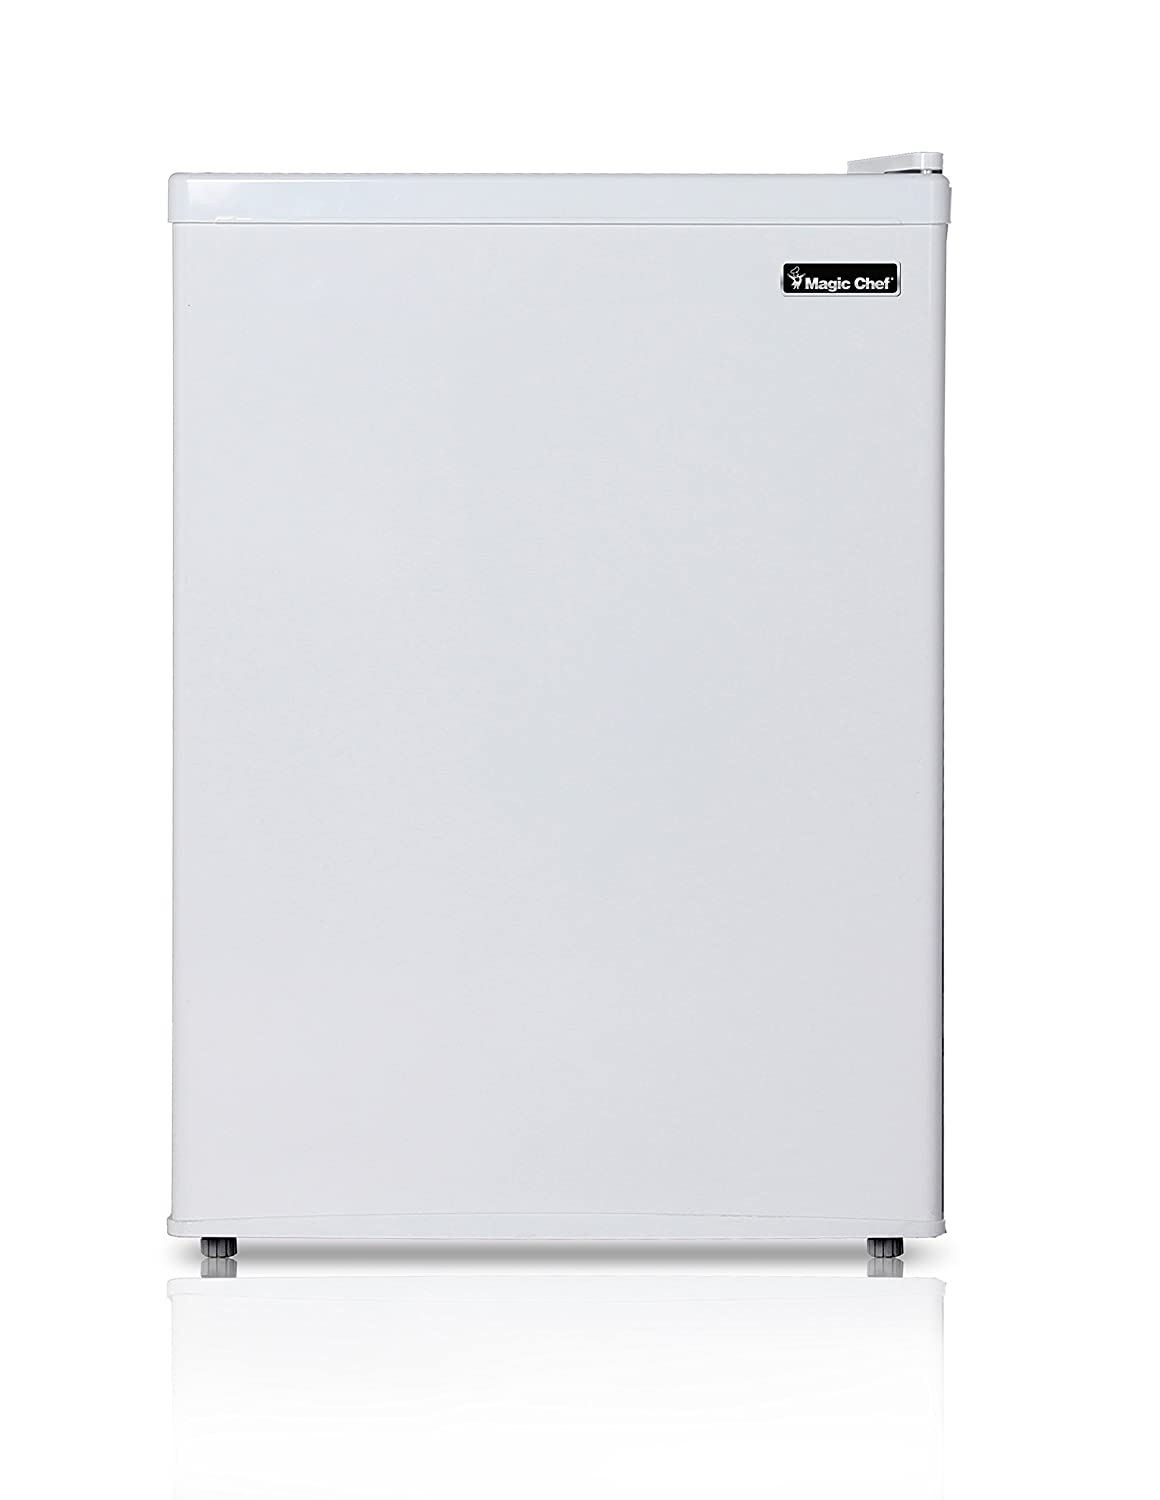 Magic Chef MCBR240W1 Refrigerator, 2.4 cu.ft., White